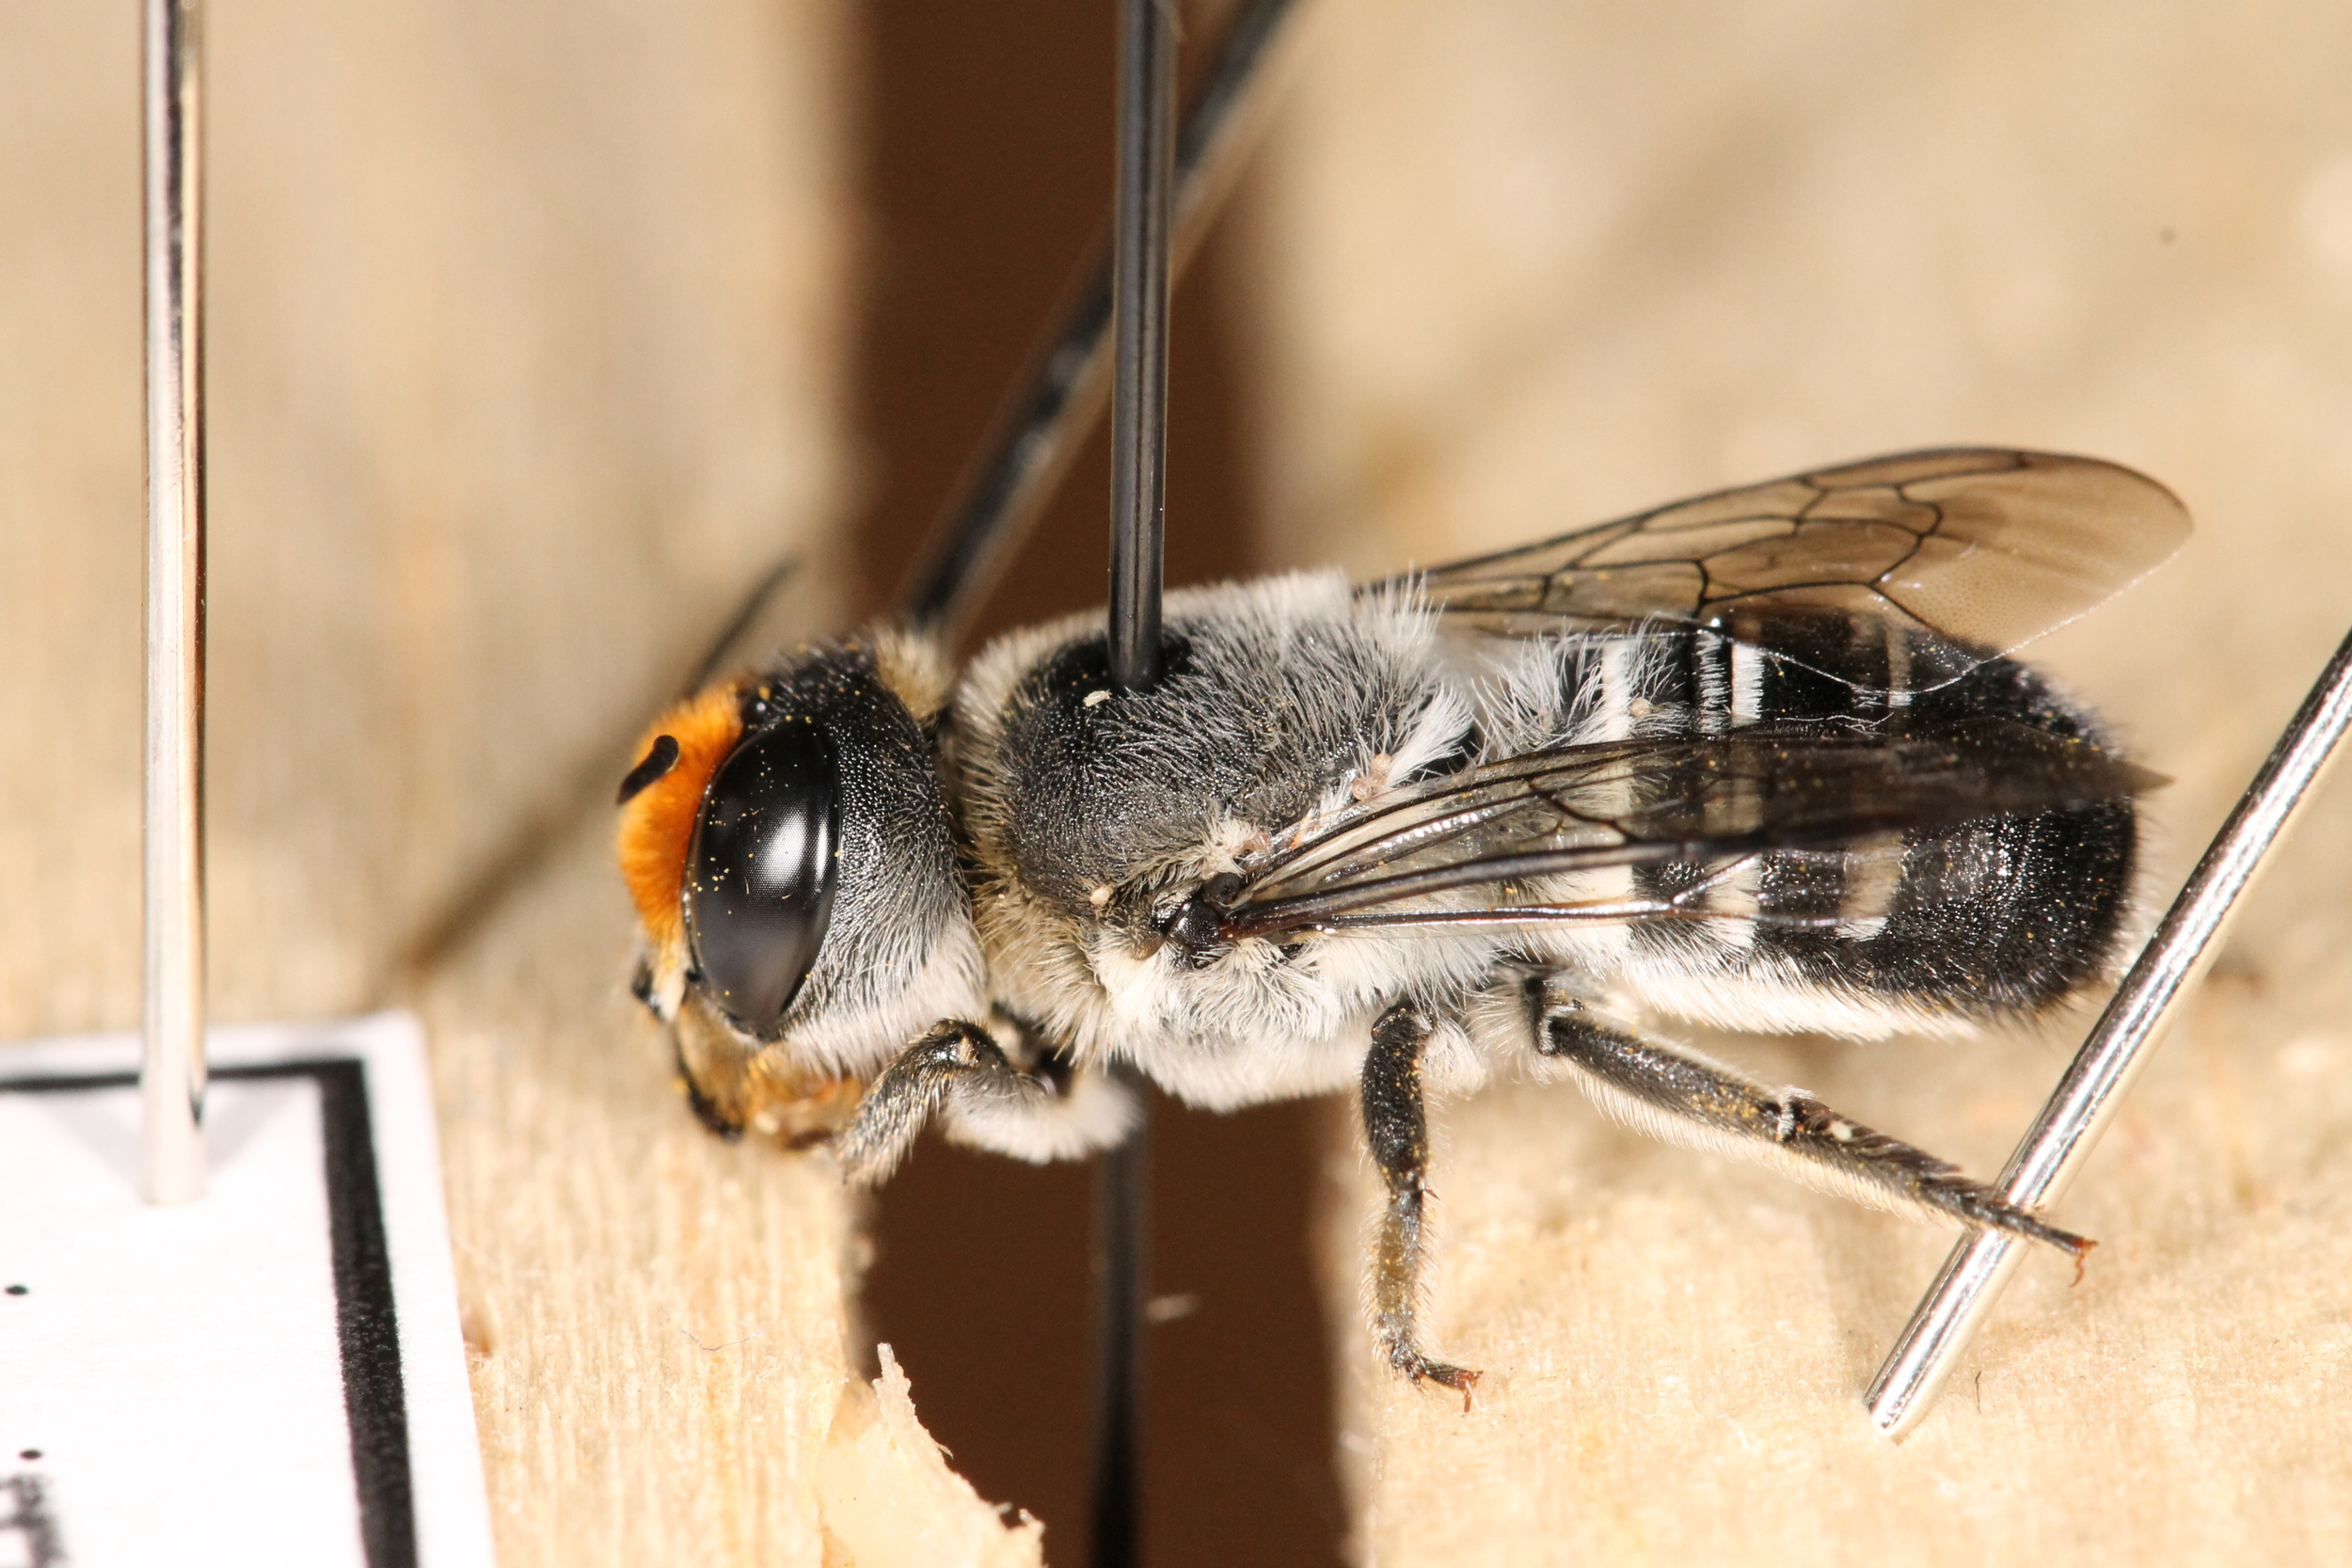 A dead megachilid bee ( Megachile erythropyga ) drying on a pinning rack.